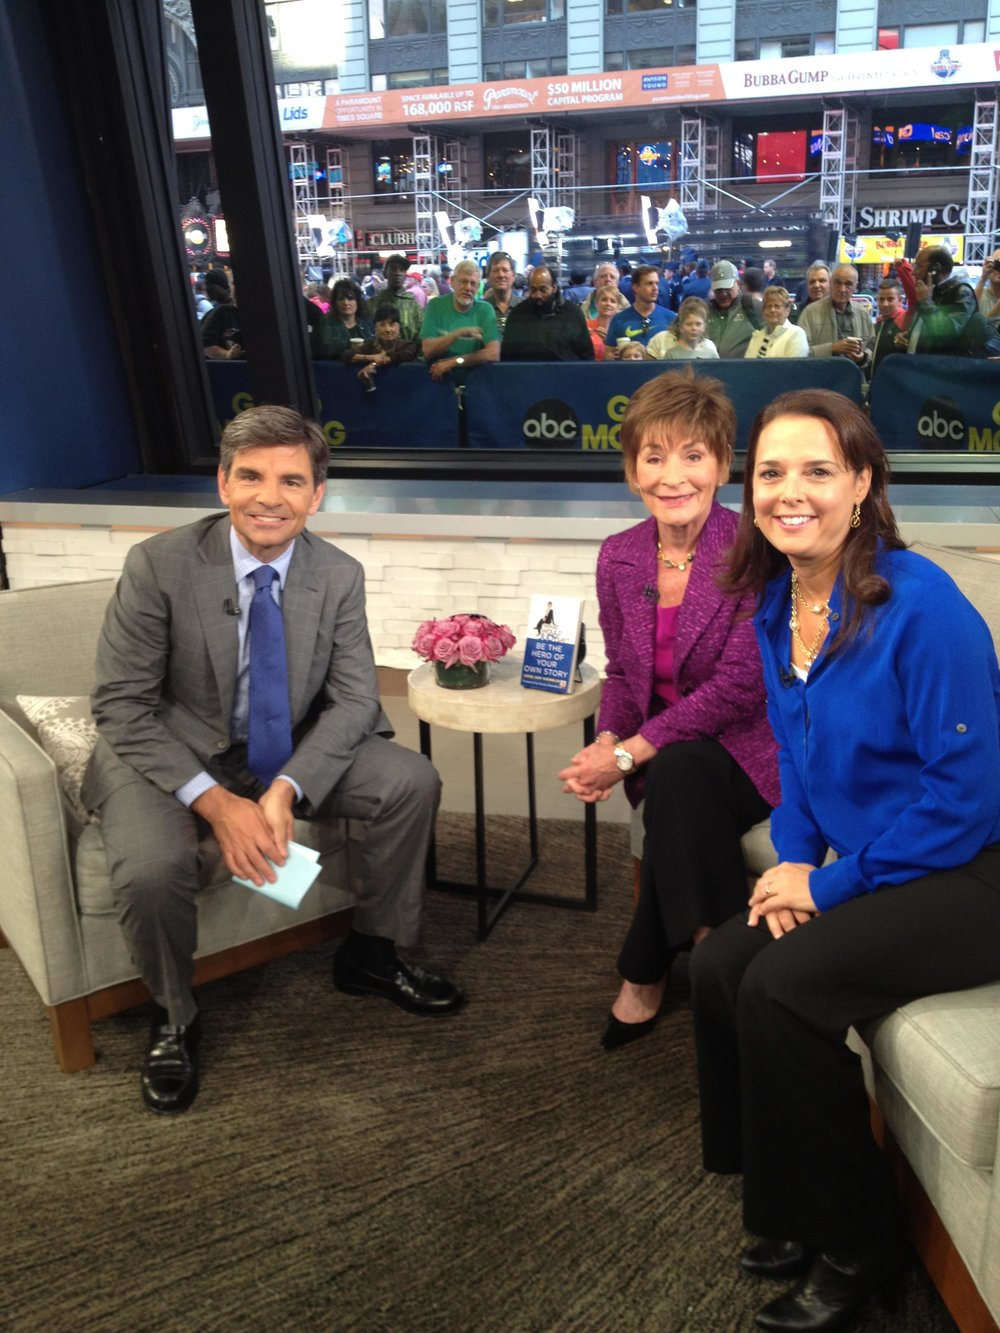 Judge Judy and Nicole Sheindlin with George Stephanopoulos